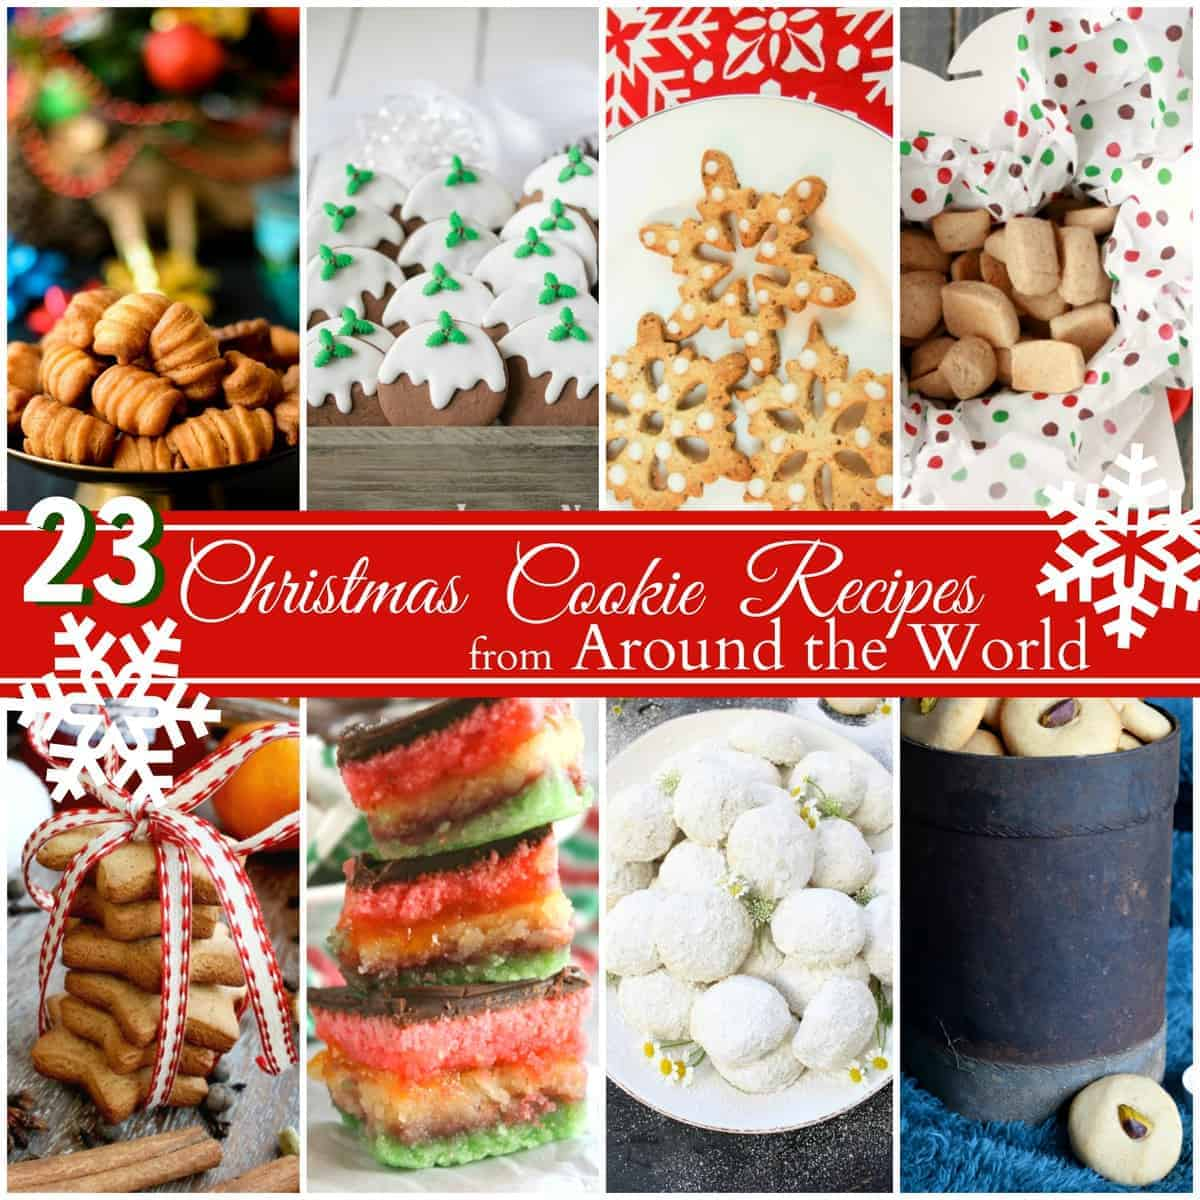 Christmas Cookies From Around The World With Pictures.Christmas Cookie Recipes From Around The World